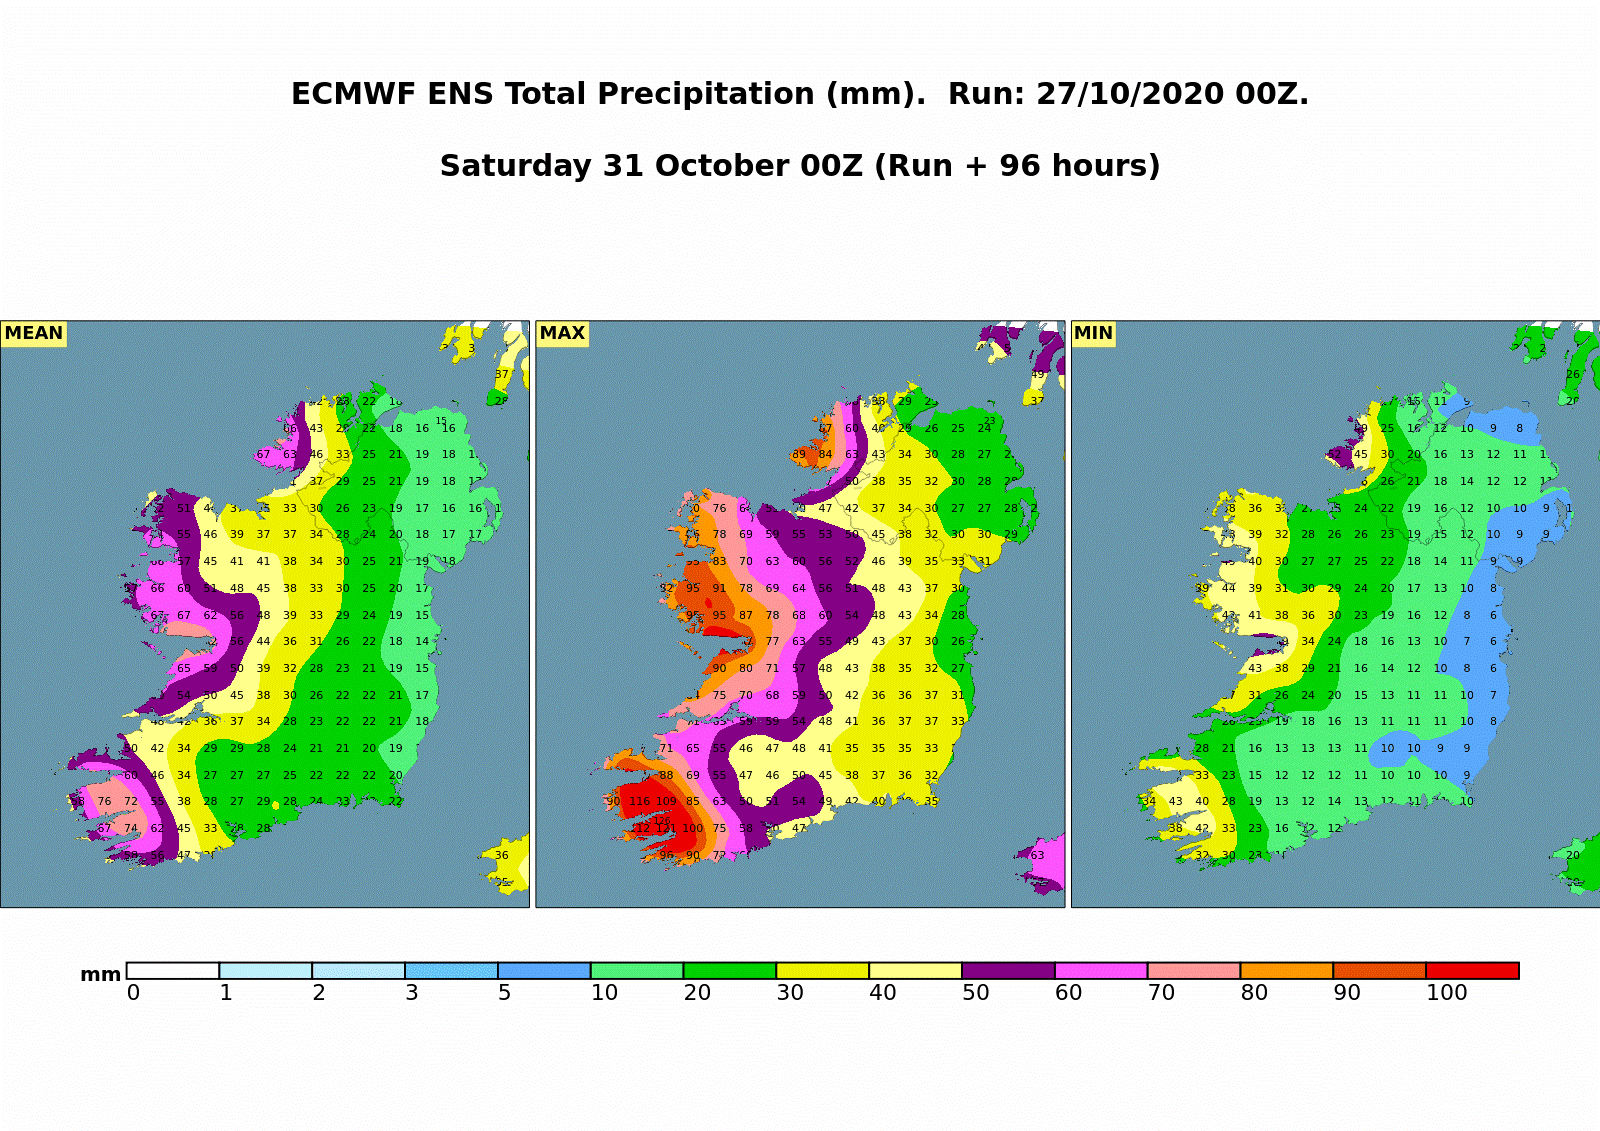 (Fig 3: Accumulated Rainfall forecast from the ECMWF Ensemble System illustrating the mean, maximum and minimum forecast total rainfall from Tuesday 00UTC 27th October to Saturday 00UTC 31st October)